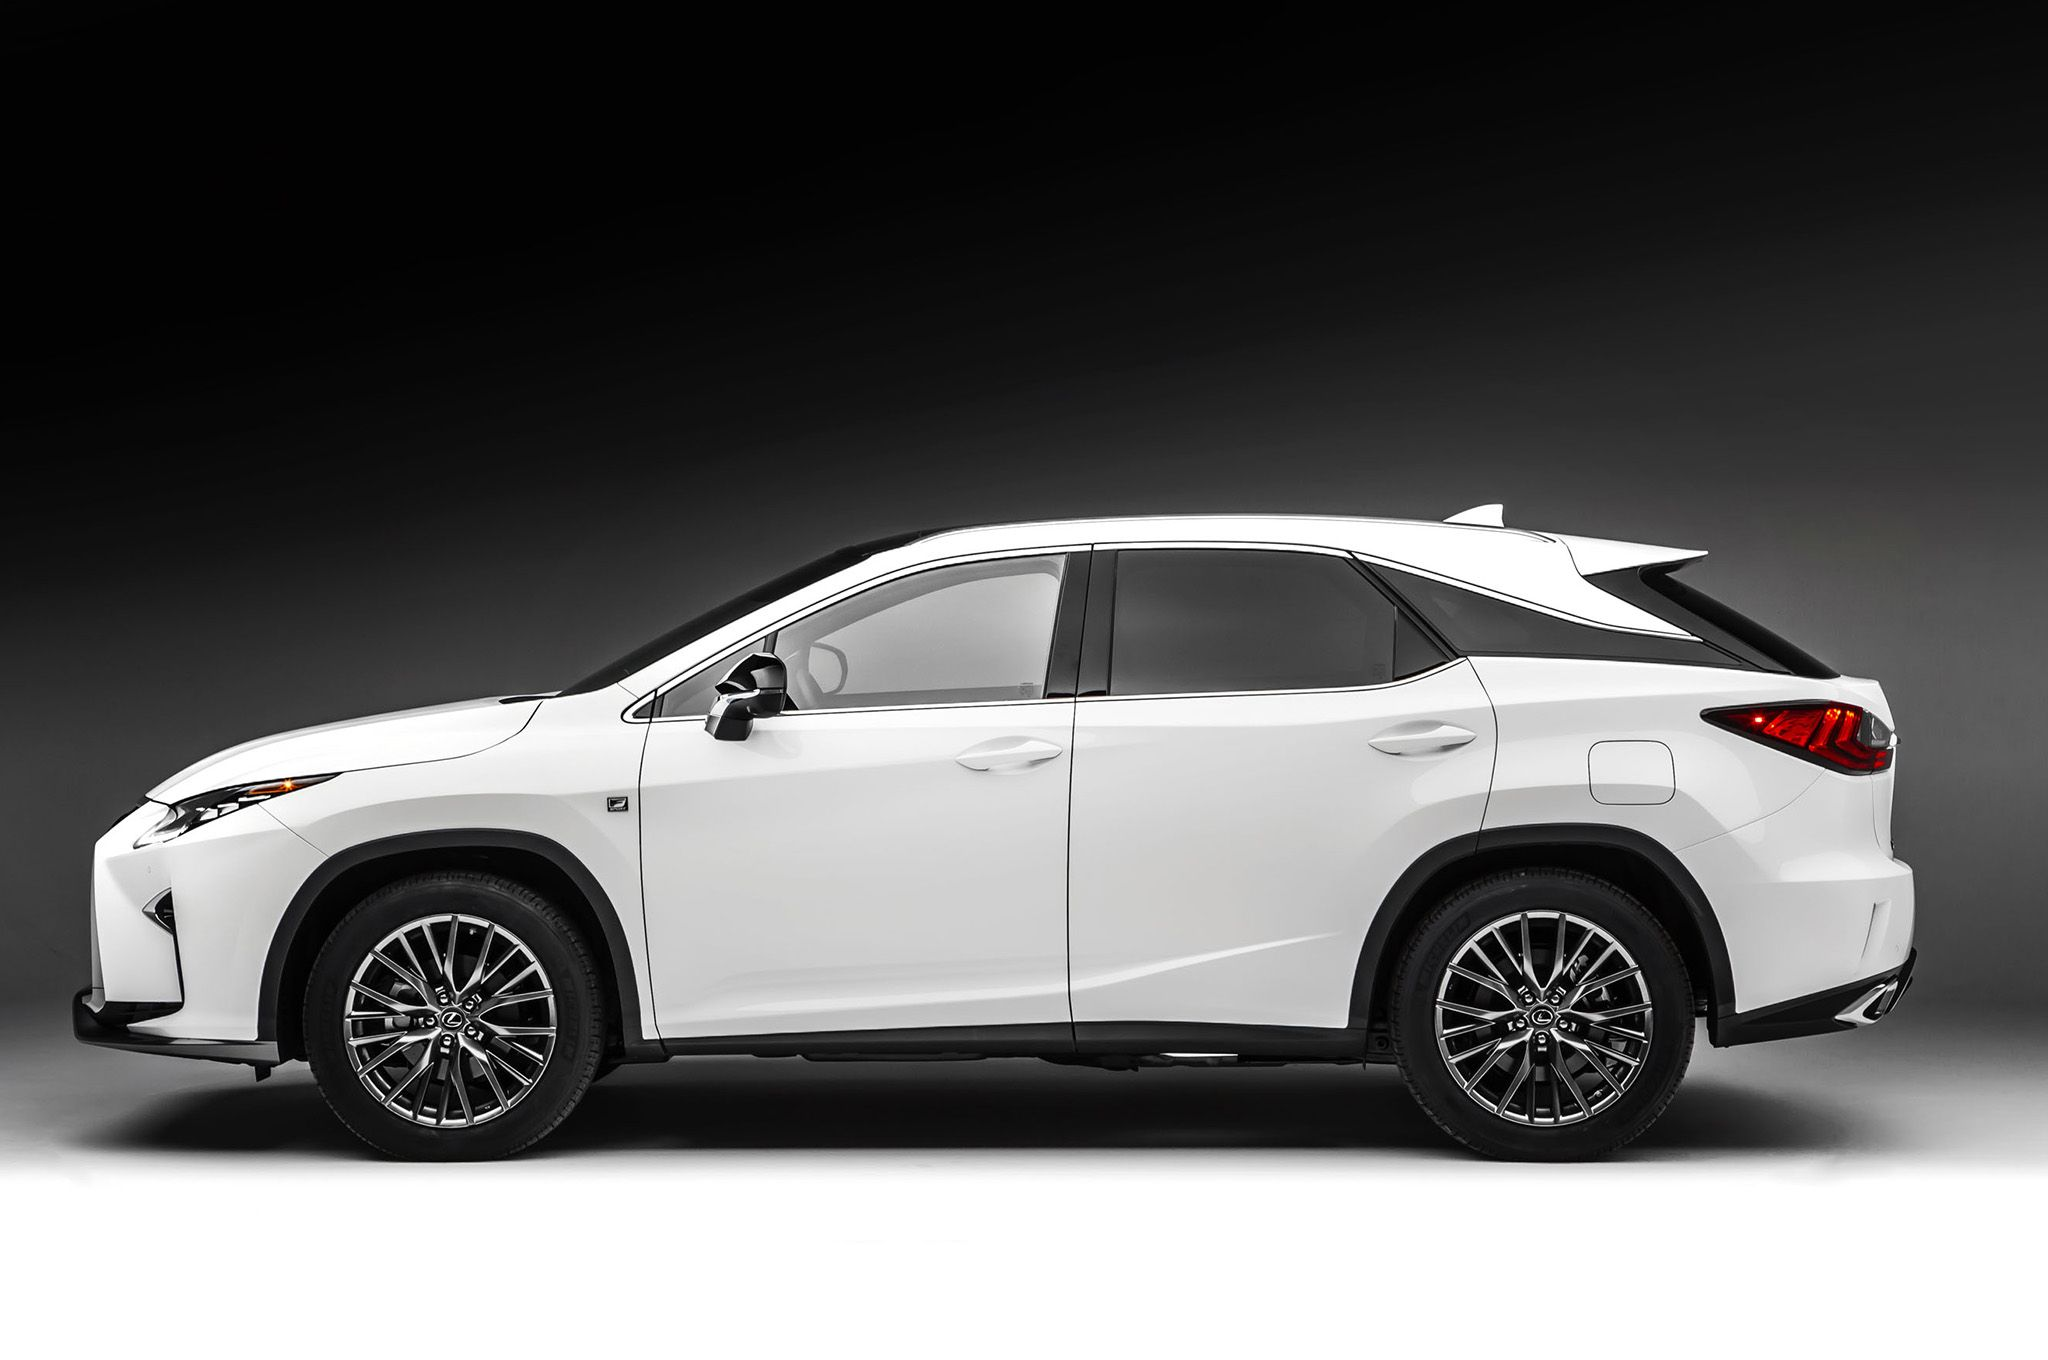 Lexus RX 350 2016 Review Website About Cars Lexus rx